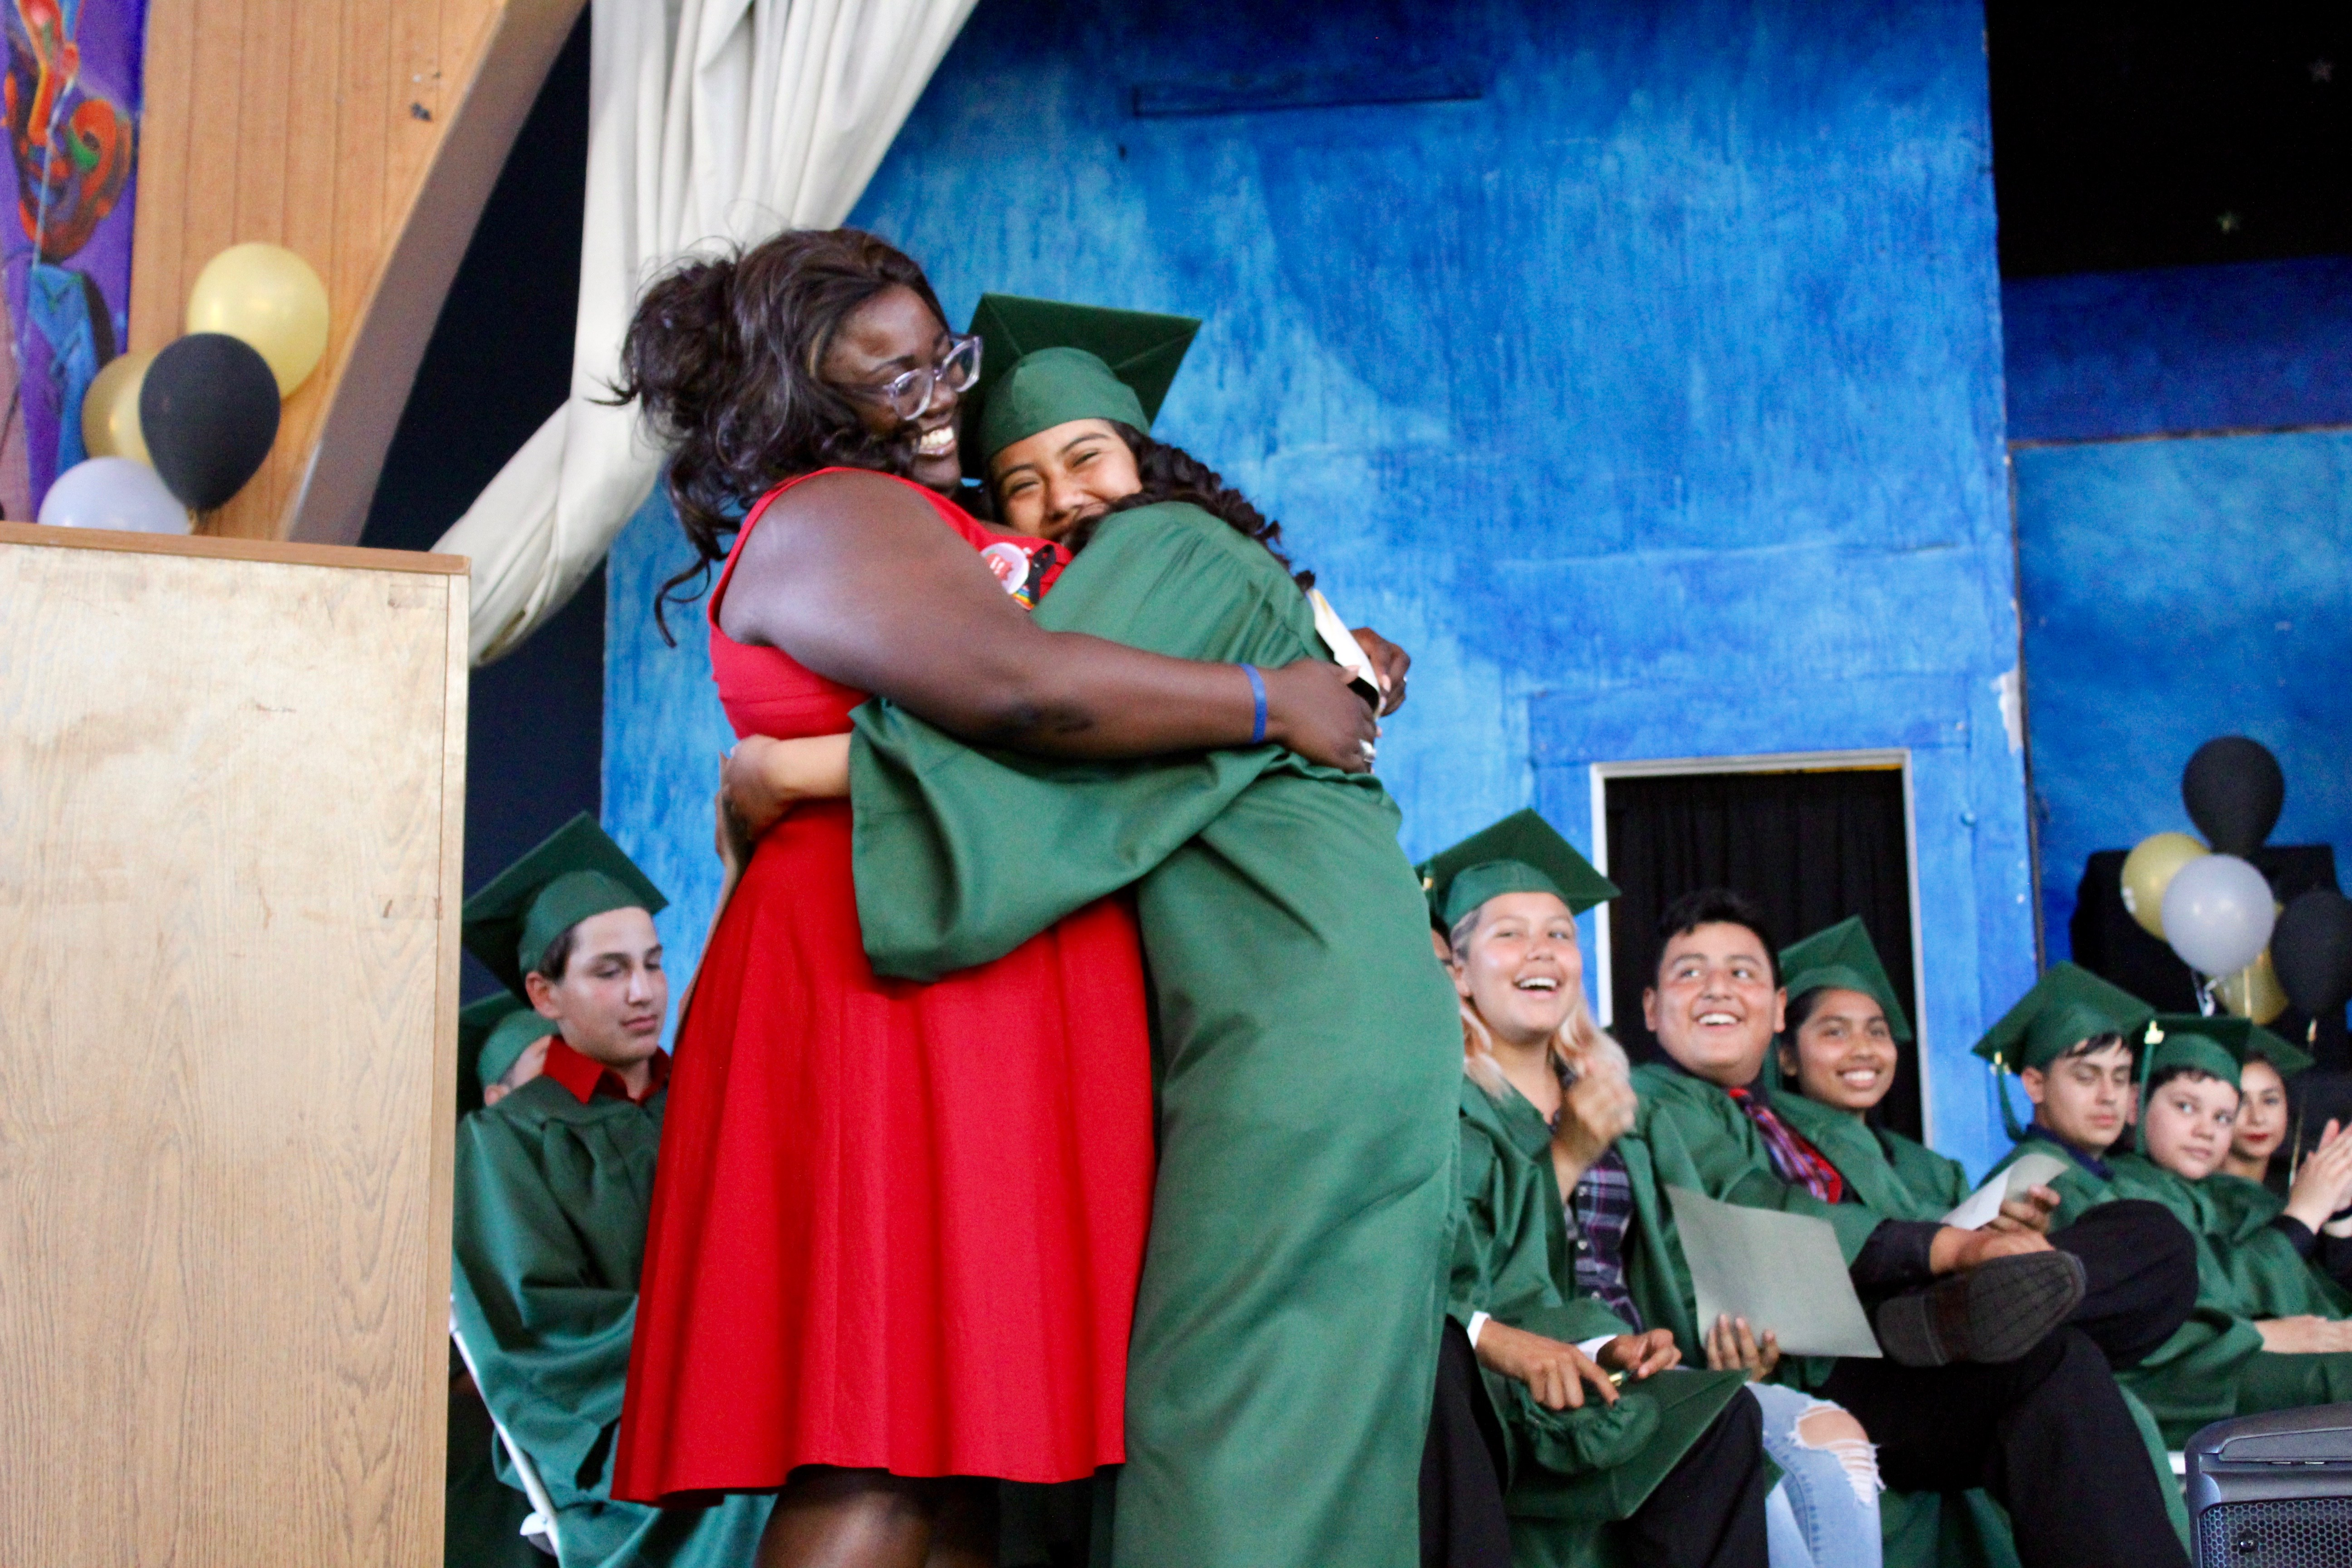 Teacher hugs student during graduation ceremony